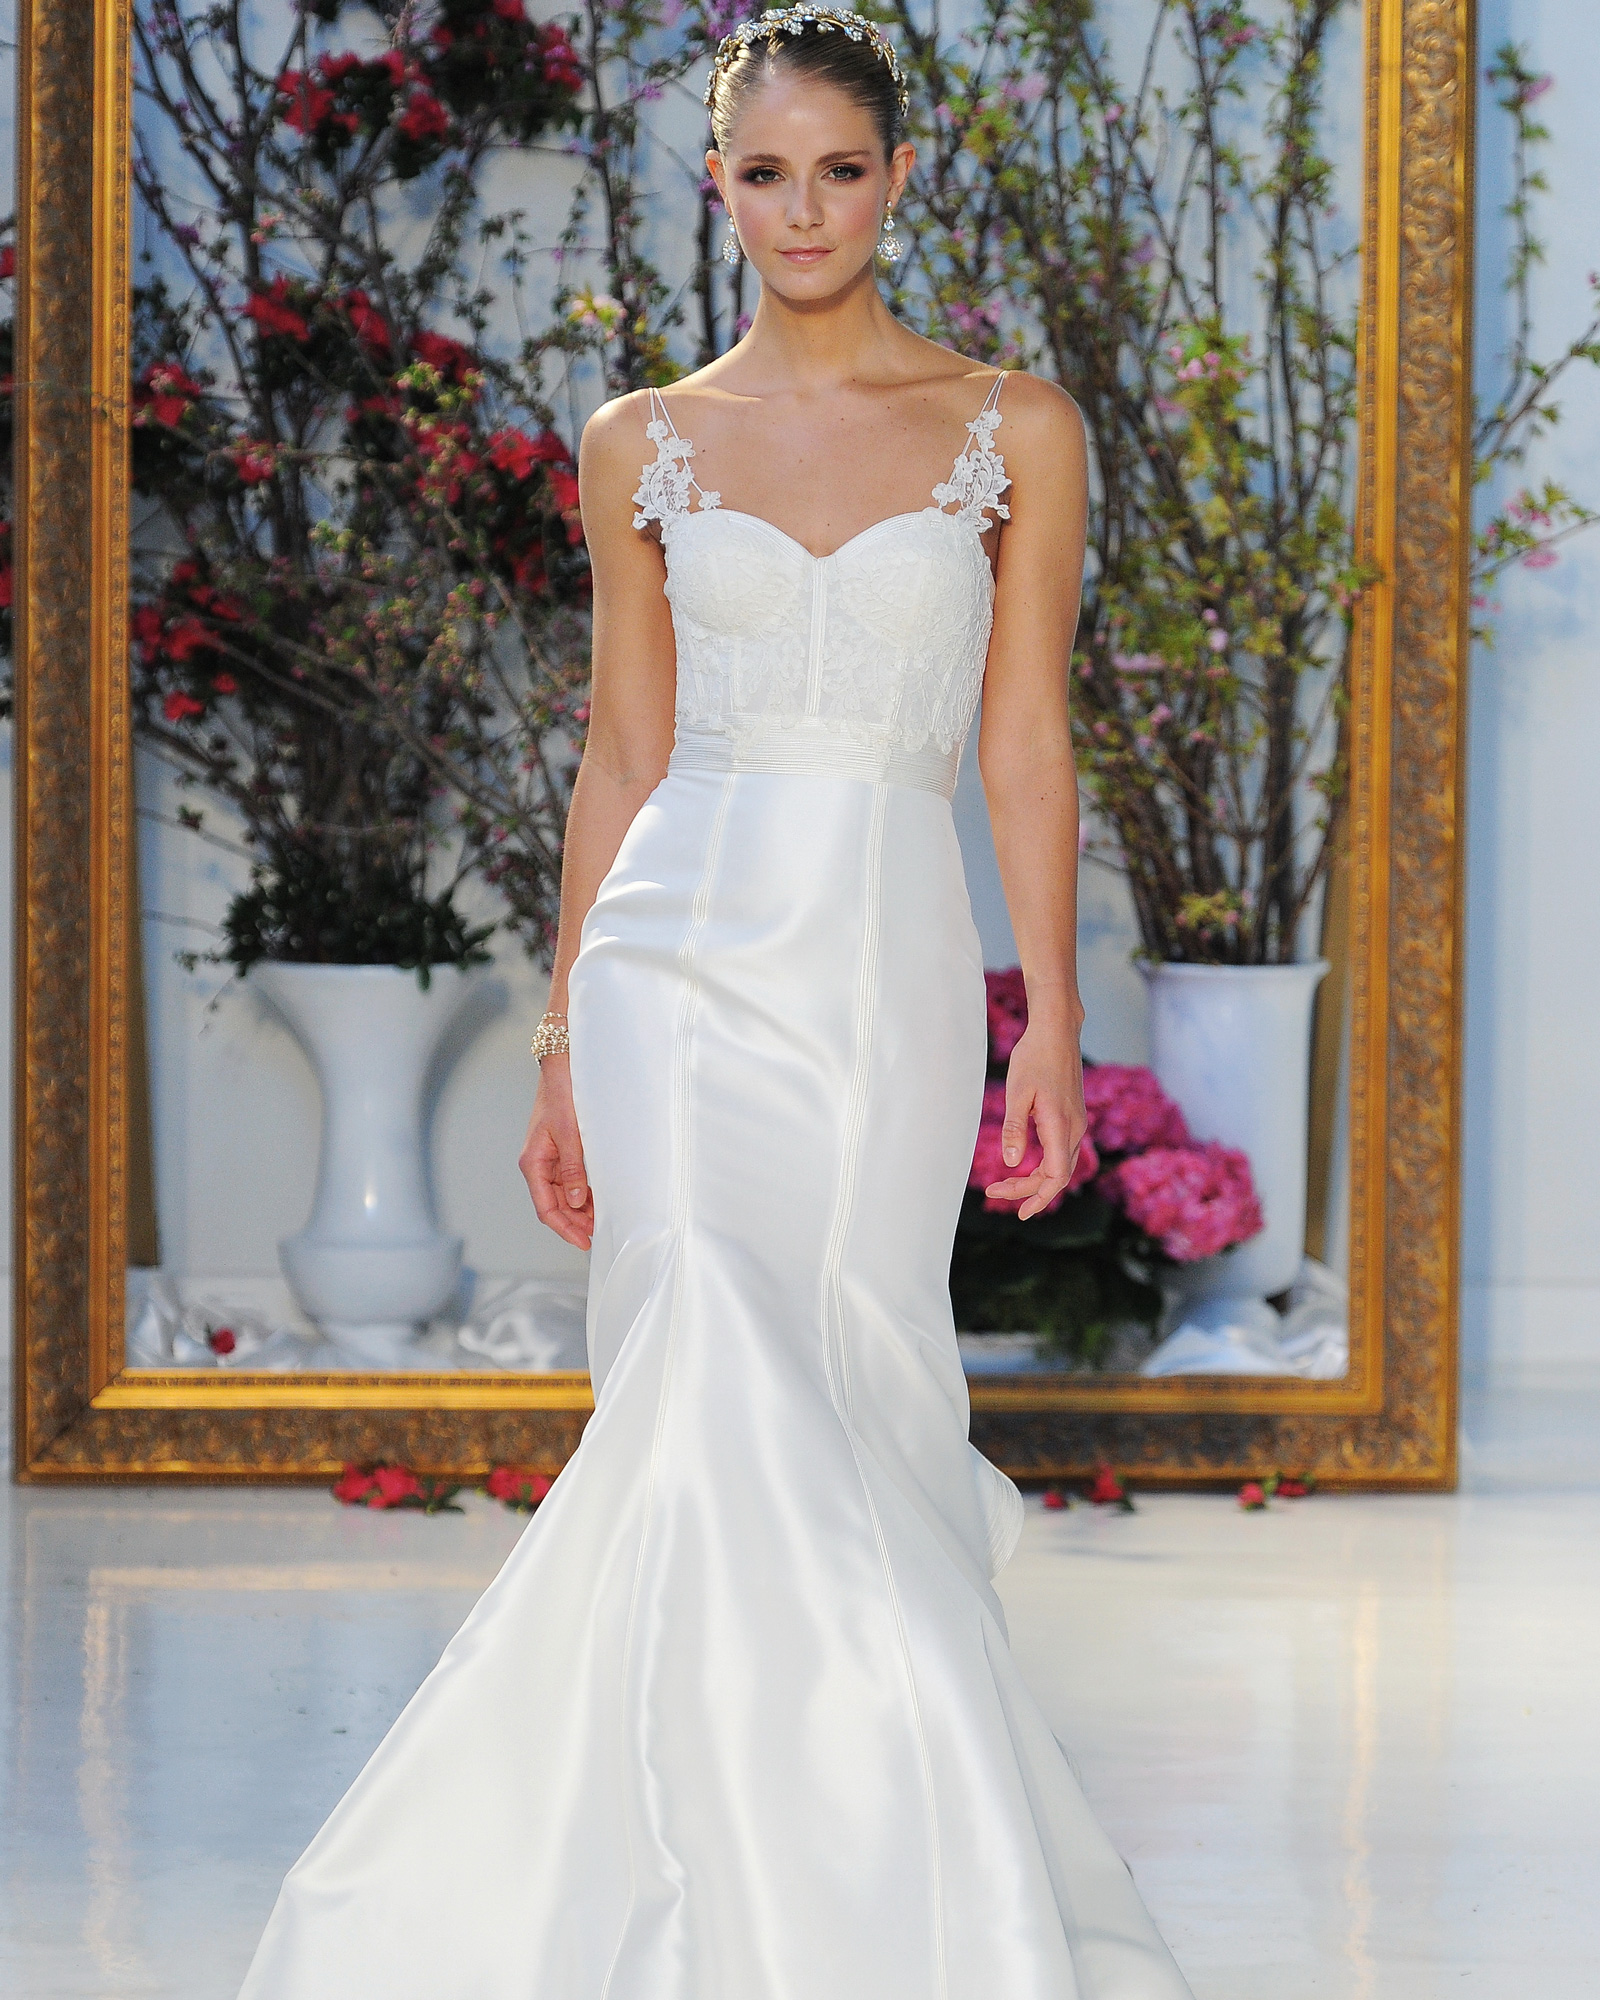 """Always a favorite for the classic bride, Anne Barge pulled out all the stops with her Spring 2017 collection, which she says was inspired by """"nature's ethereal transition,"""" or """"the awakening of spring gardens, still covered in frost, petals only peeking."""" We're loving the intricate lace detailing and shoulder and neck adornments. Simple and refined, the elegant dresses truly are a perfect blend of contemporary and classic, but with a bit of boho, too.                             """"Chandler""""                             Corset bodice of lace and soutache with mermaid Kalika skirt and linear seaming with flutter train."""